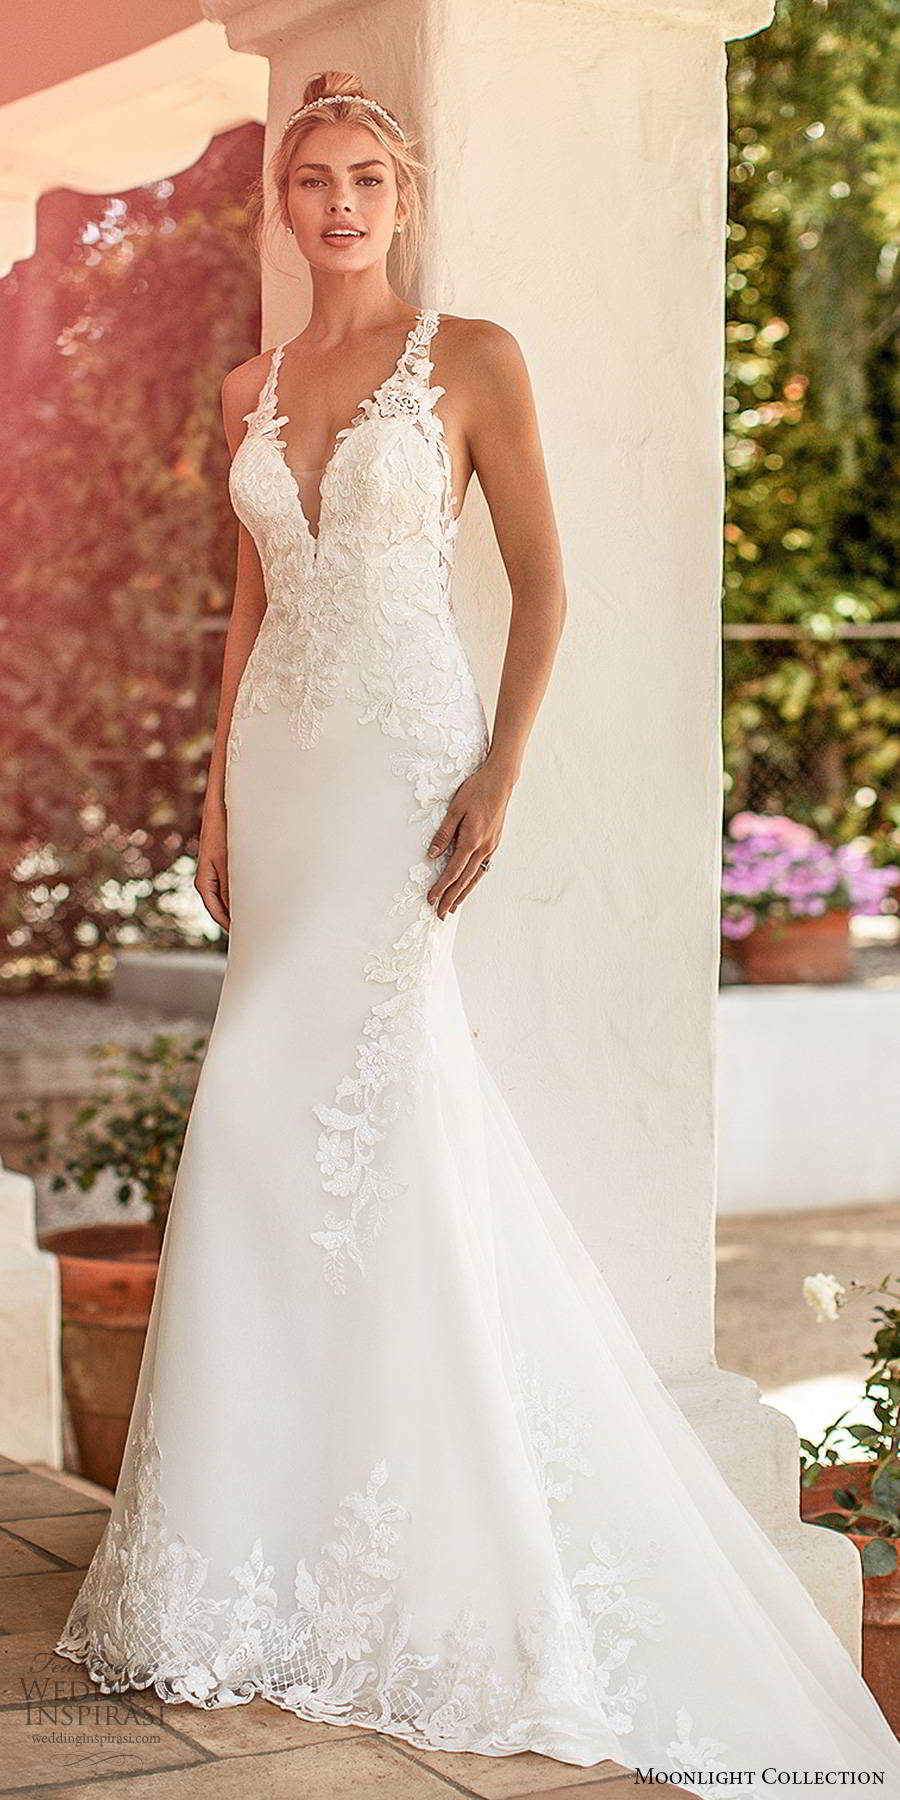 moonlight collection spring 2020 bridal sleeveless sheer straps plunging v neckline embellished bodice elegant sexy sheath fit flare wedding dress cutout back chapel train (11) mv